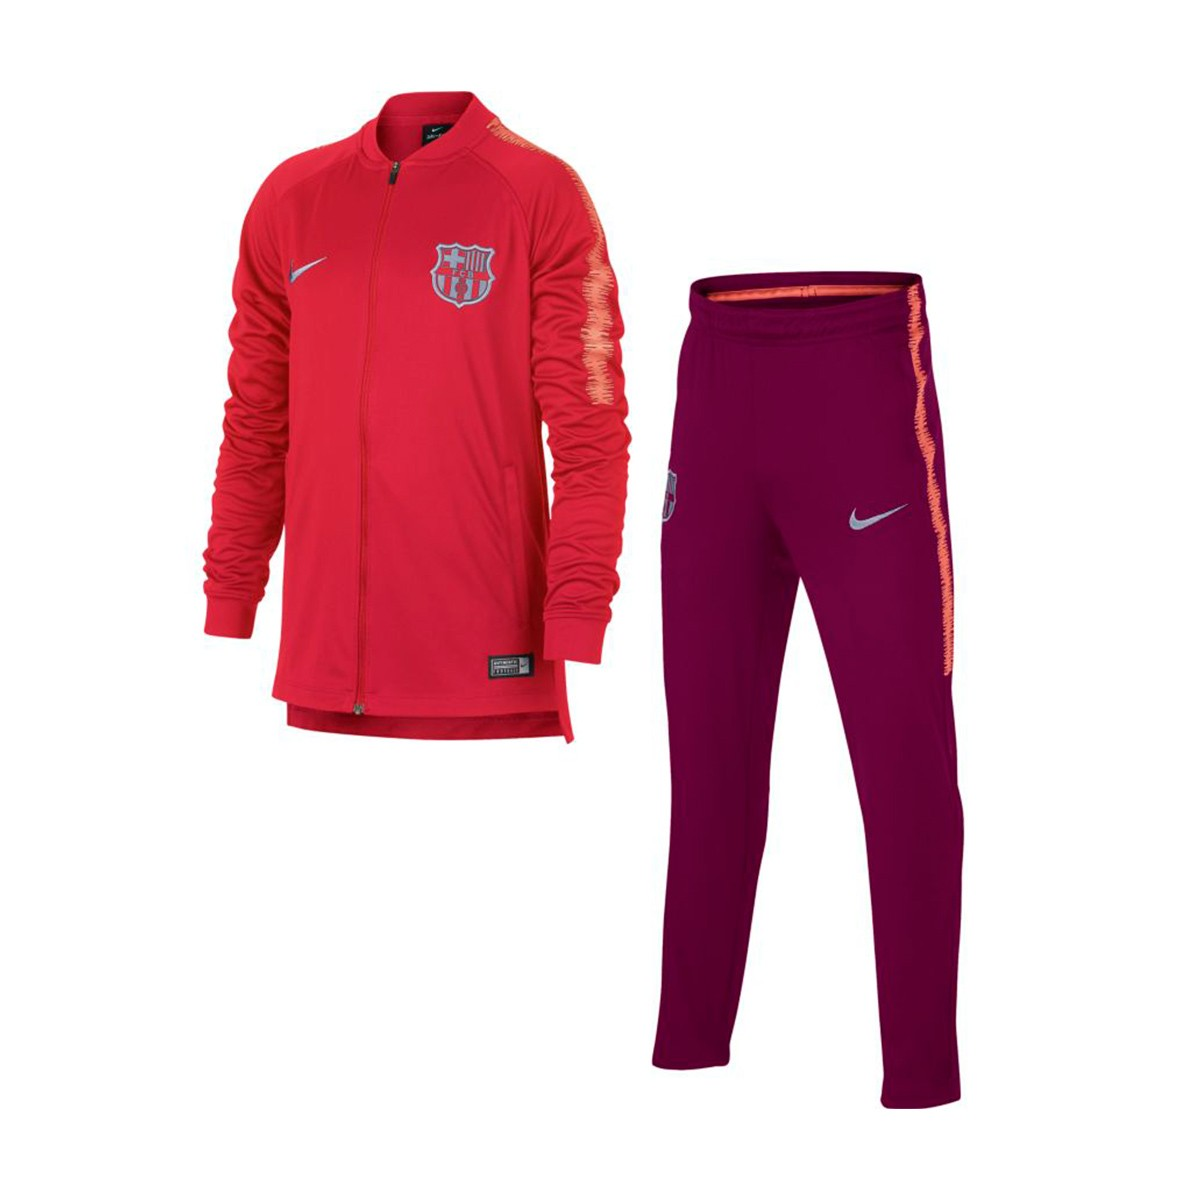 f1b1965e9ad77b Tuta Nike FC Barcellona Squad 2018-2019 Junior Tropical pink-Deep  maroon-Light atomic pink - Negozio di calcio Fútbol Emotion